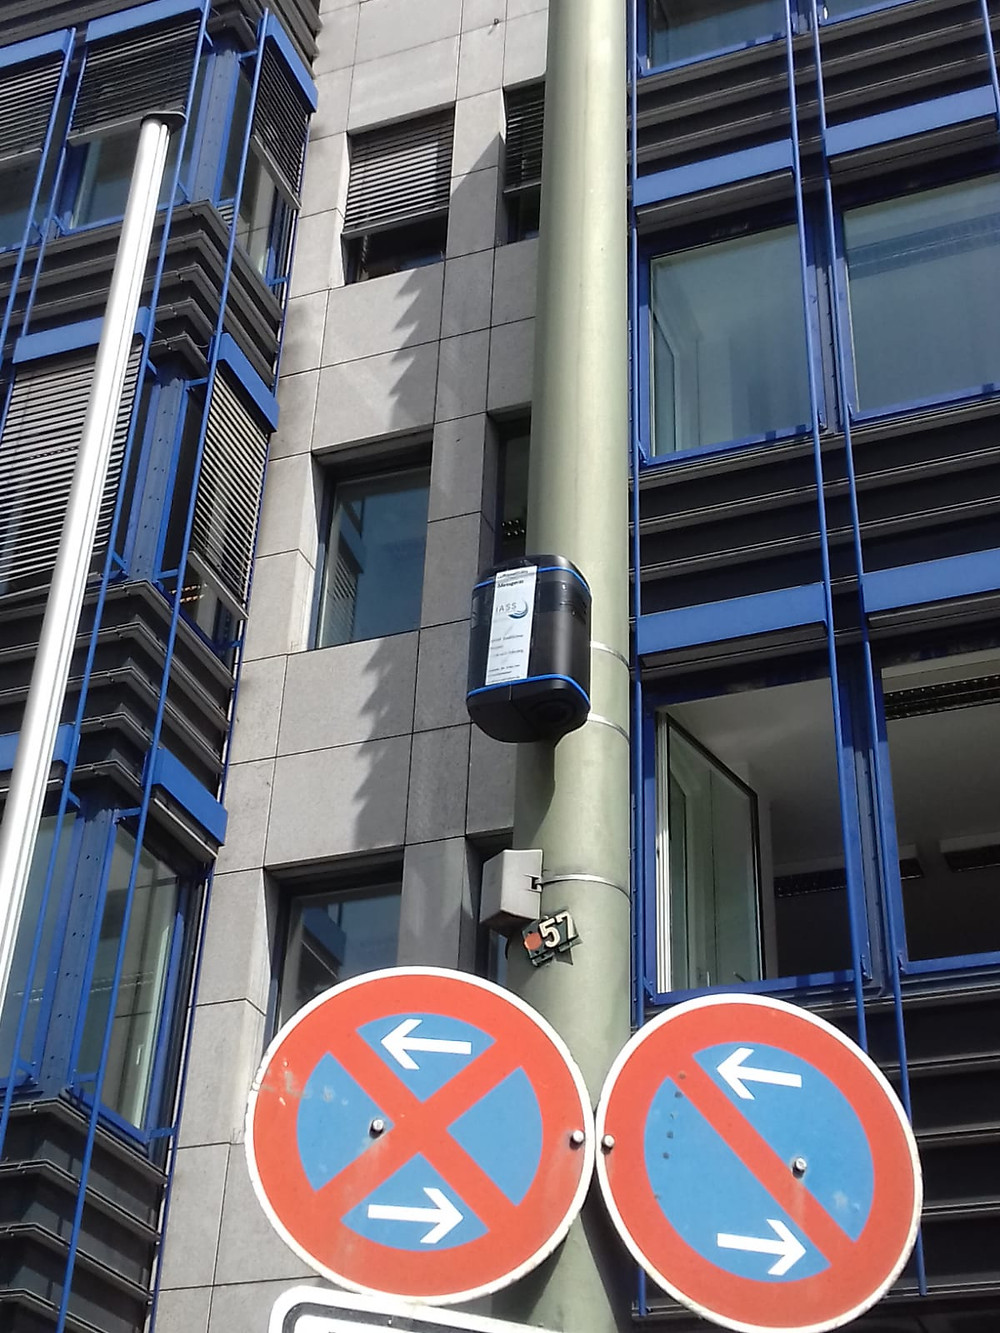 Zephyr® sensor deployed on a sign post in Potsdam, Berlin